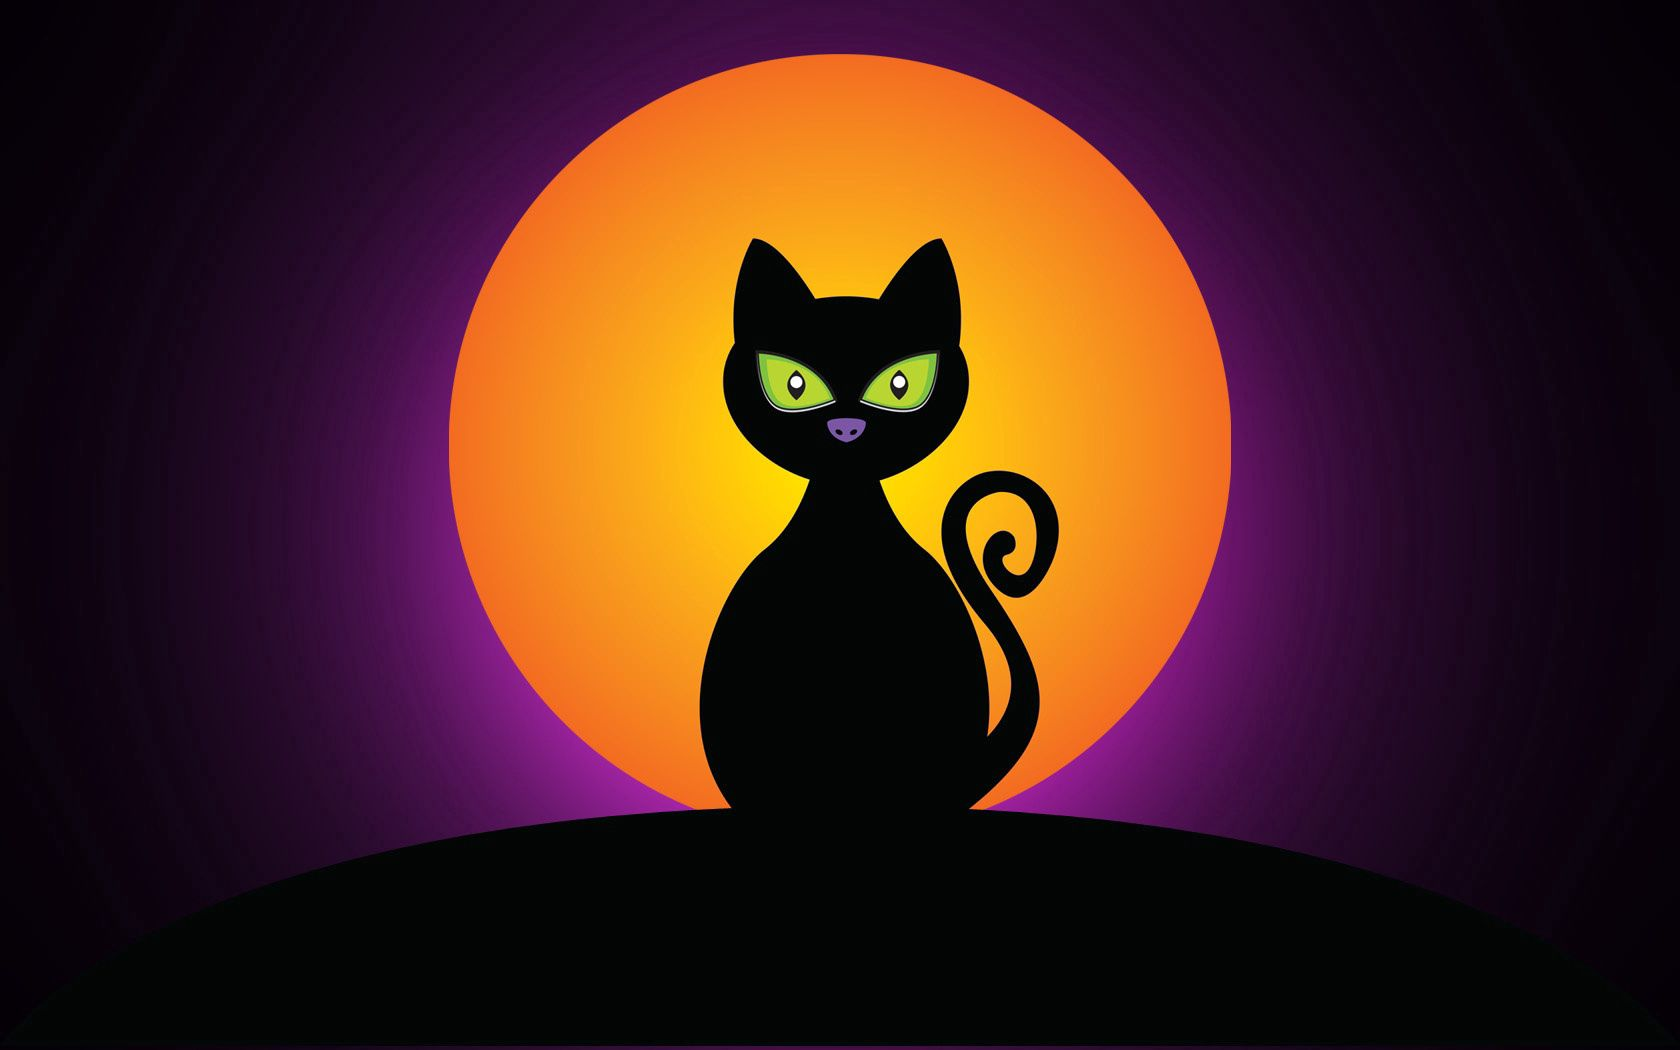 144112 download wallpaper Halloween, Moon, Vector, Silhouette, Cat screensavers and pictures for free